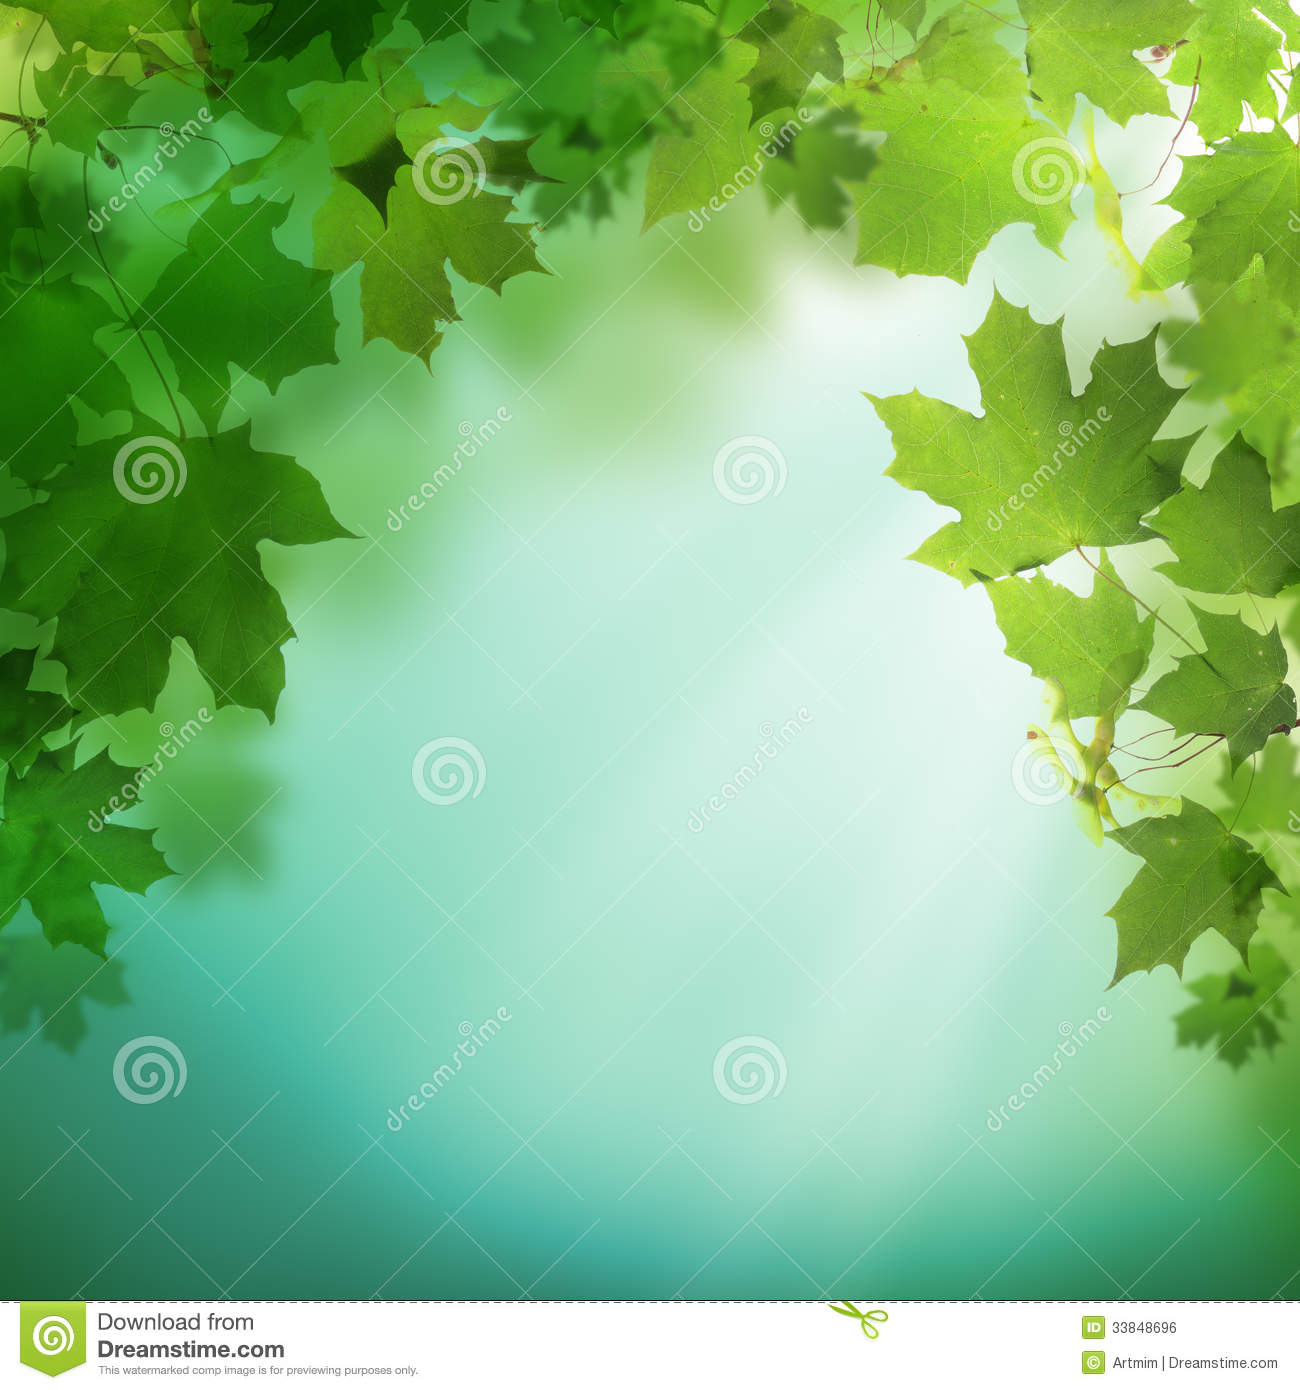 summer green background with greenery foliage stock photo image of